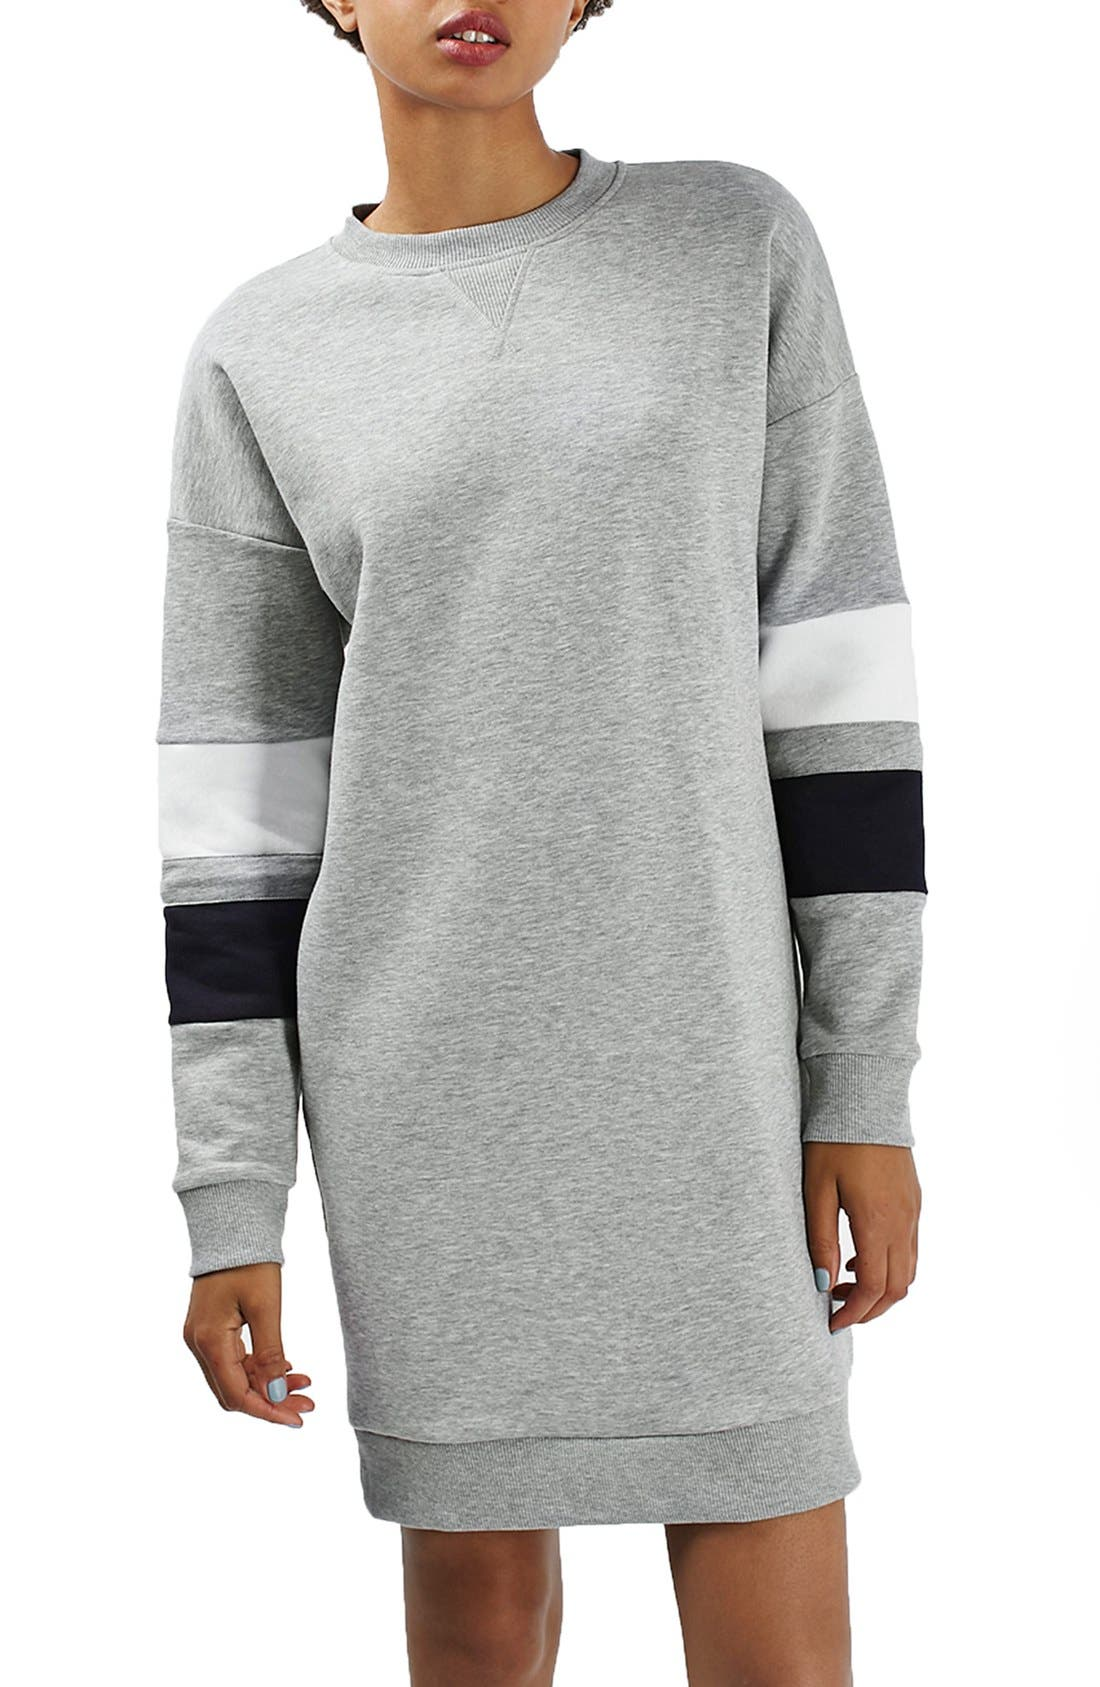 Main Image - Topshop Colorblock Sweatshirt Dress